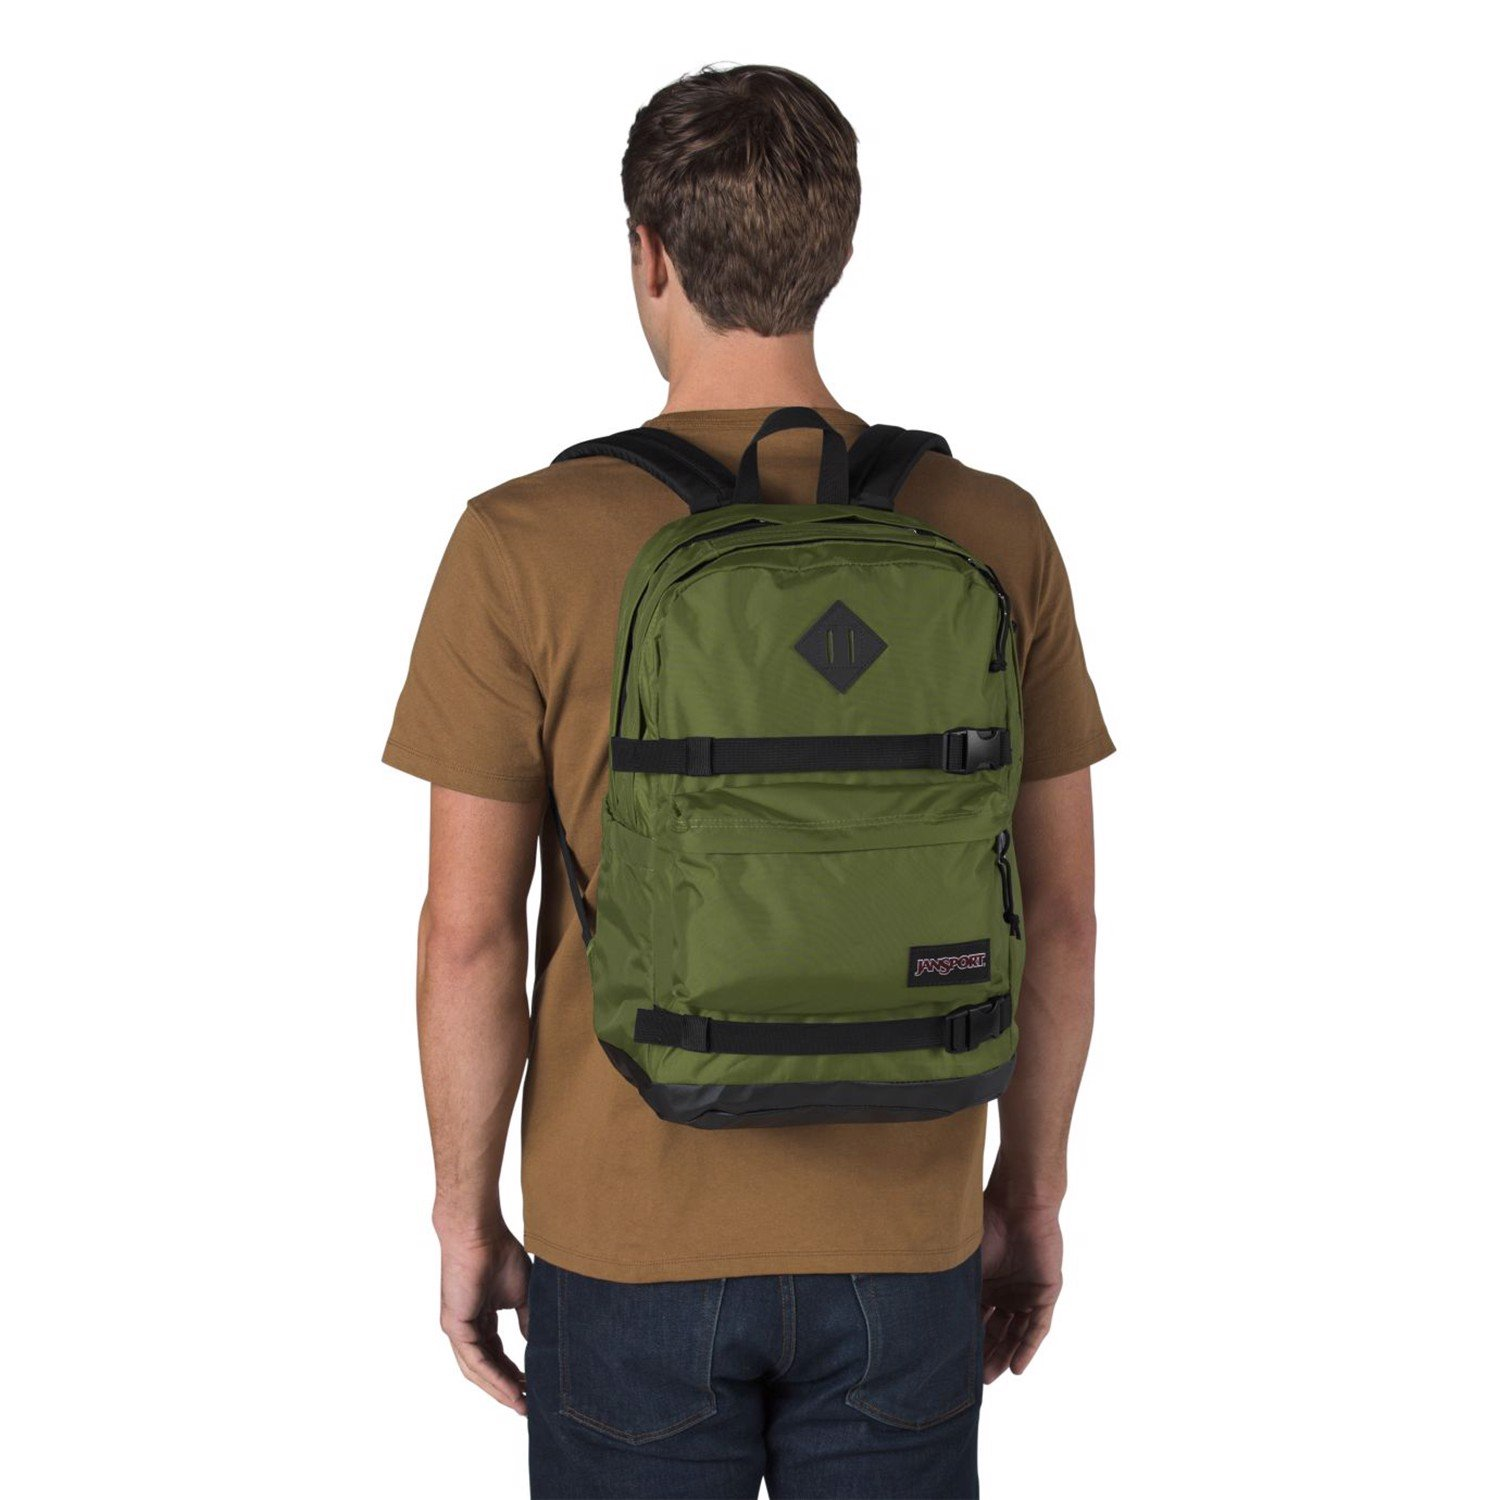 Jansport West Break Backpack 'Olive'